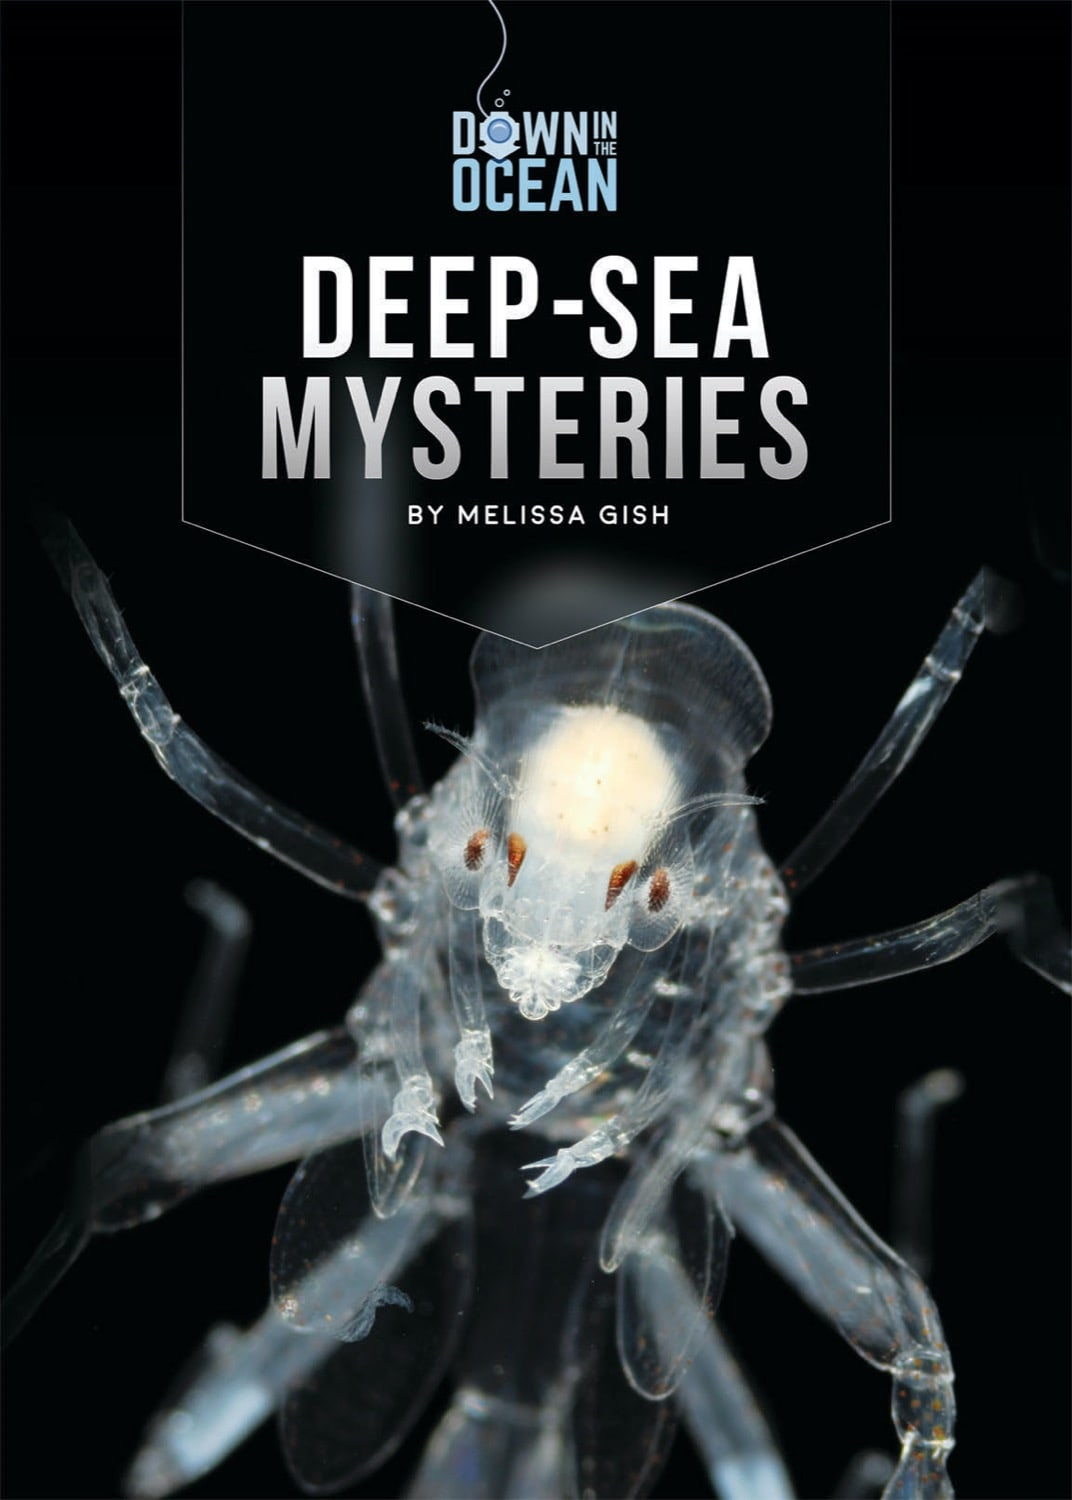 Down in the Ocean: Deep-Sea Mysteries